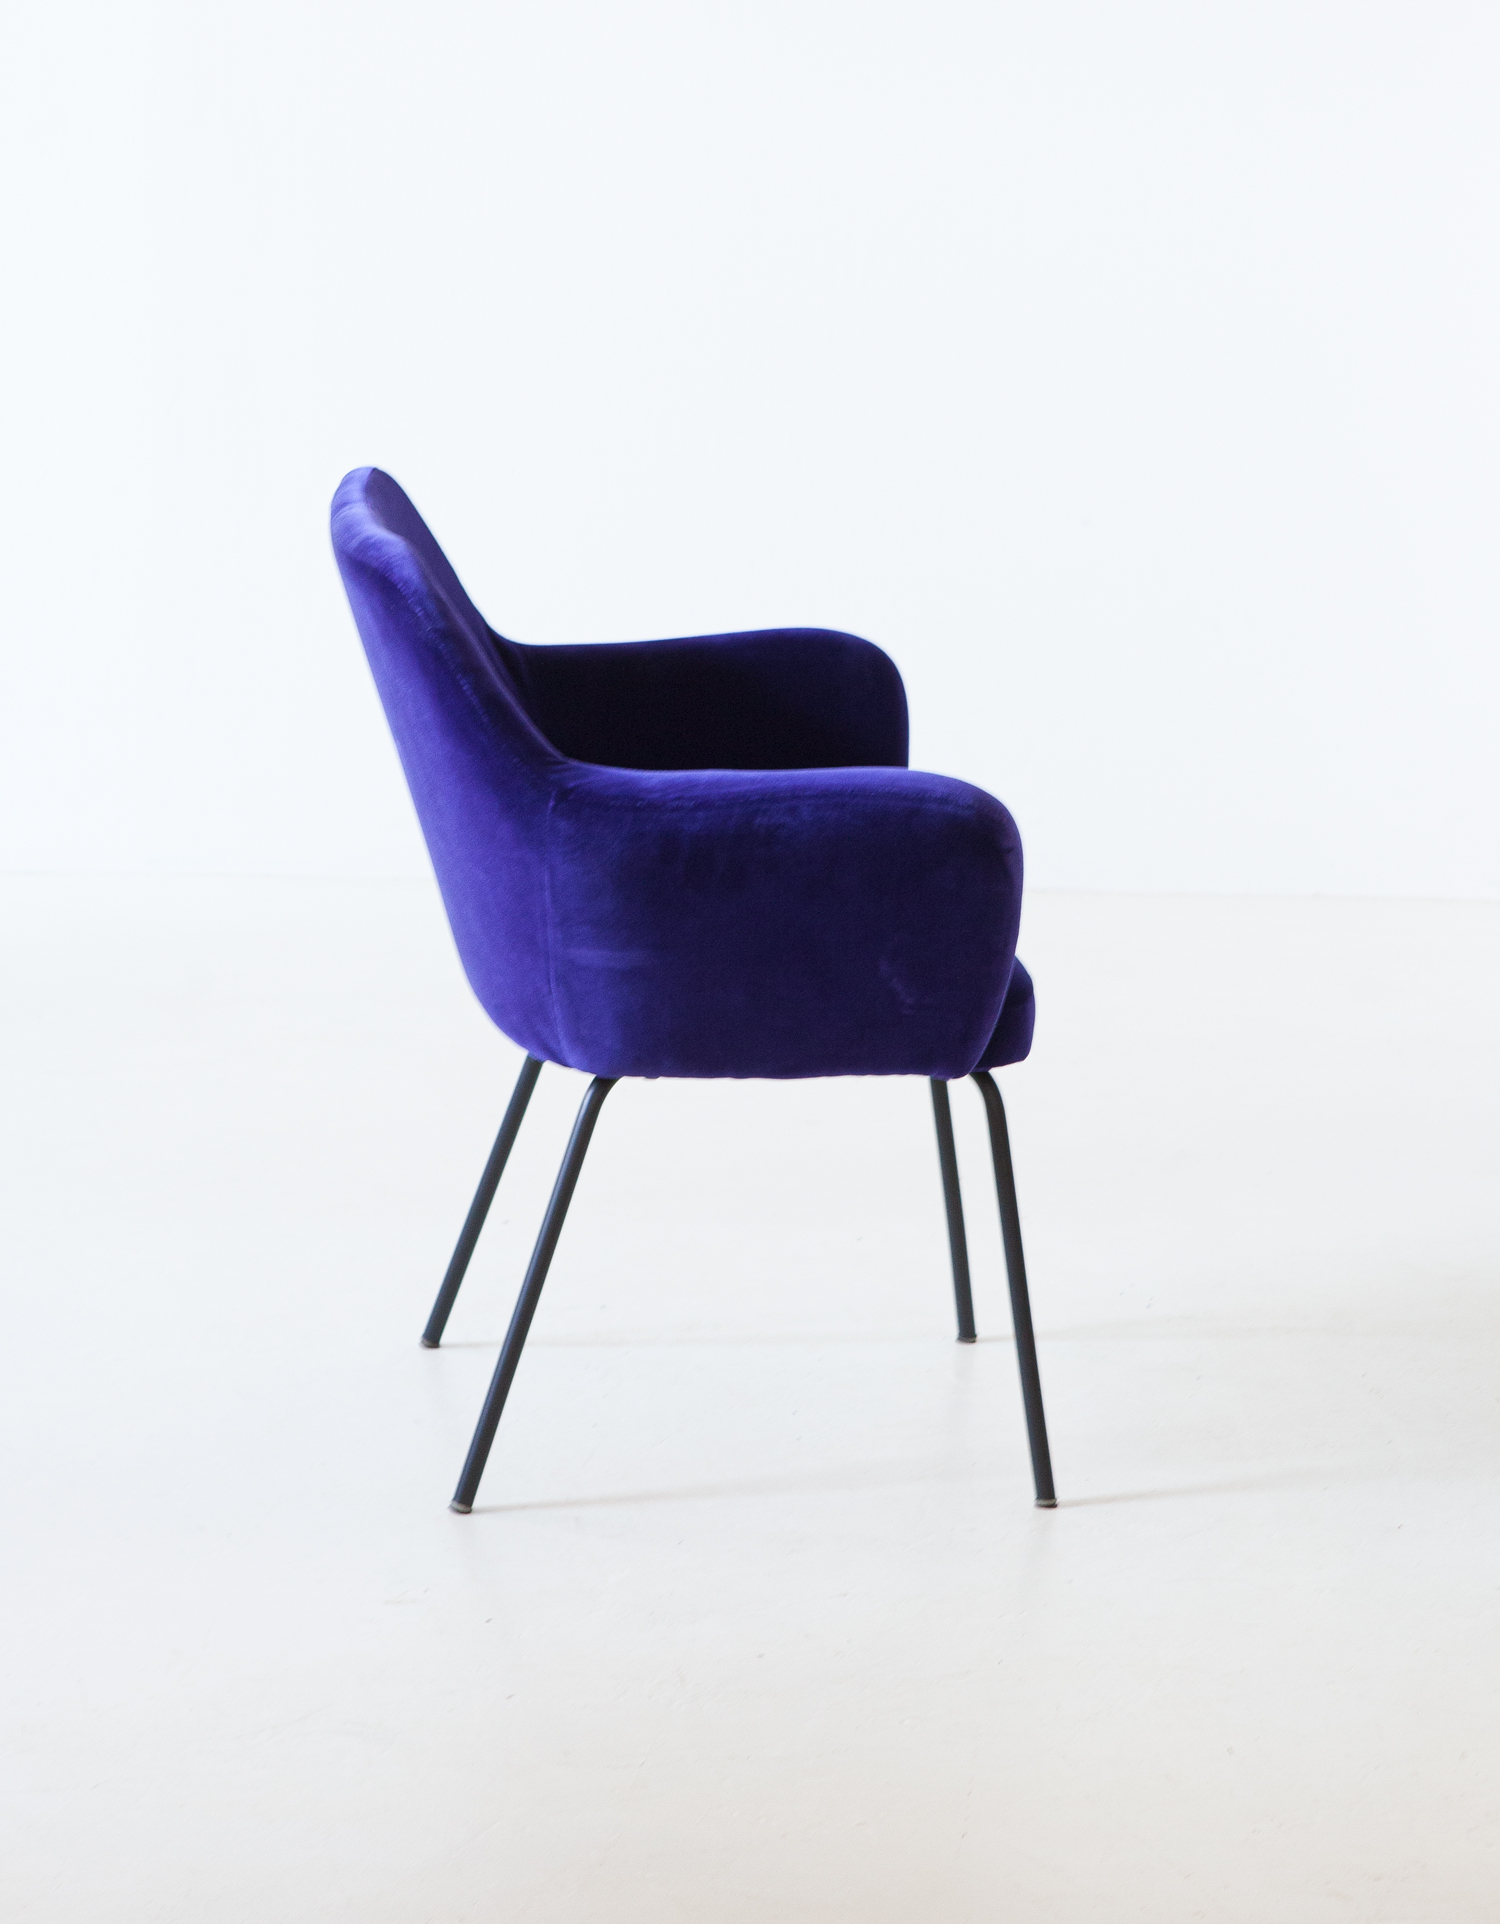 1950s-purle-velvet-armchair-by-studio-pfr-for--arflex-8-se318